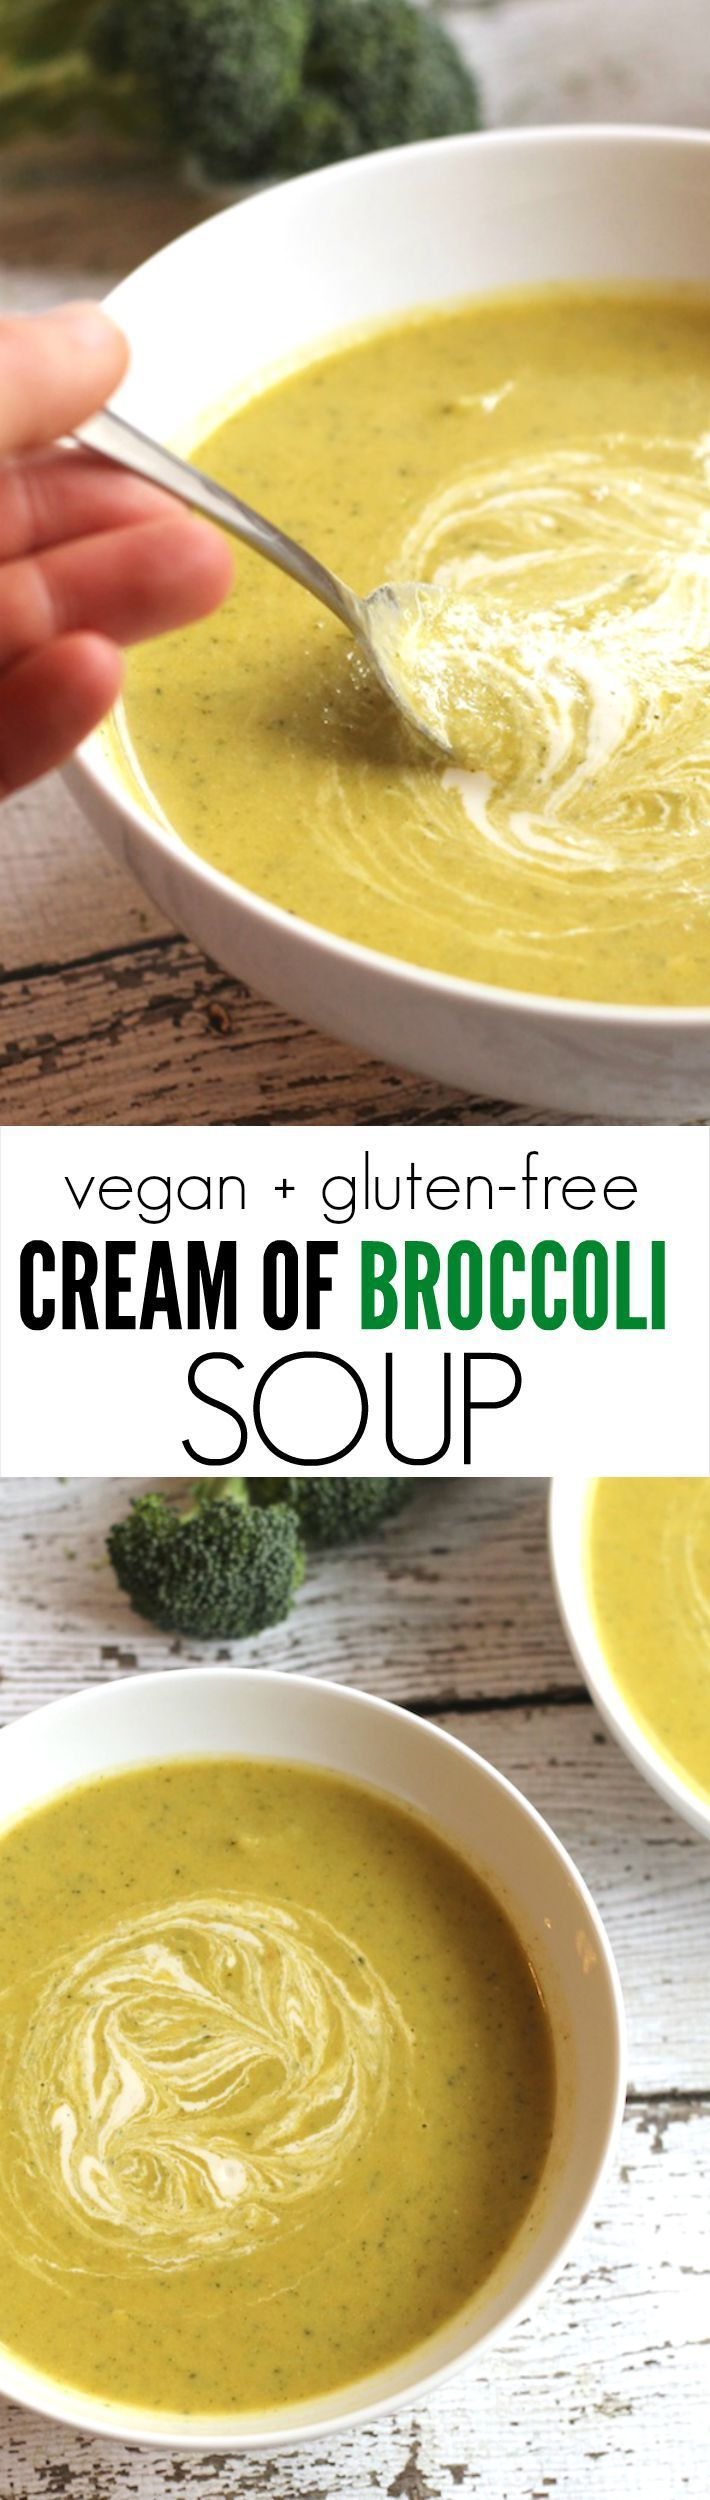 The creamiest broccoli soup...completely healthy, vegan!